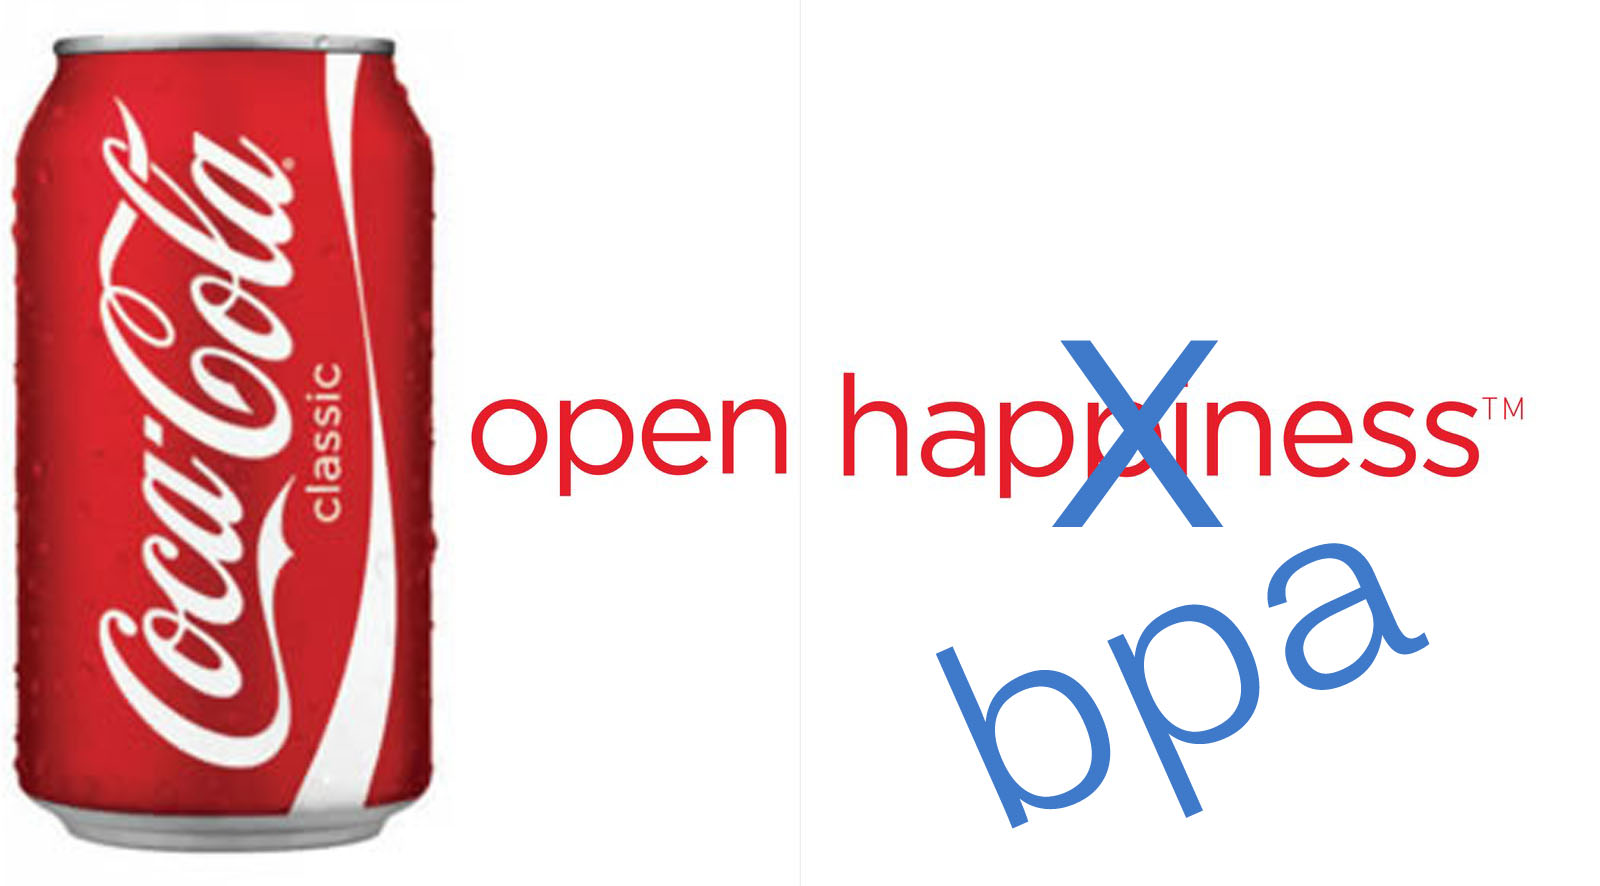 http://www.lawyersandsettlements.com/blog/wp-content/uploads/2010/04/coke-happiness-bpa-redux.jpg